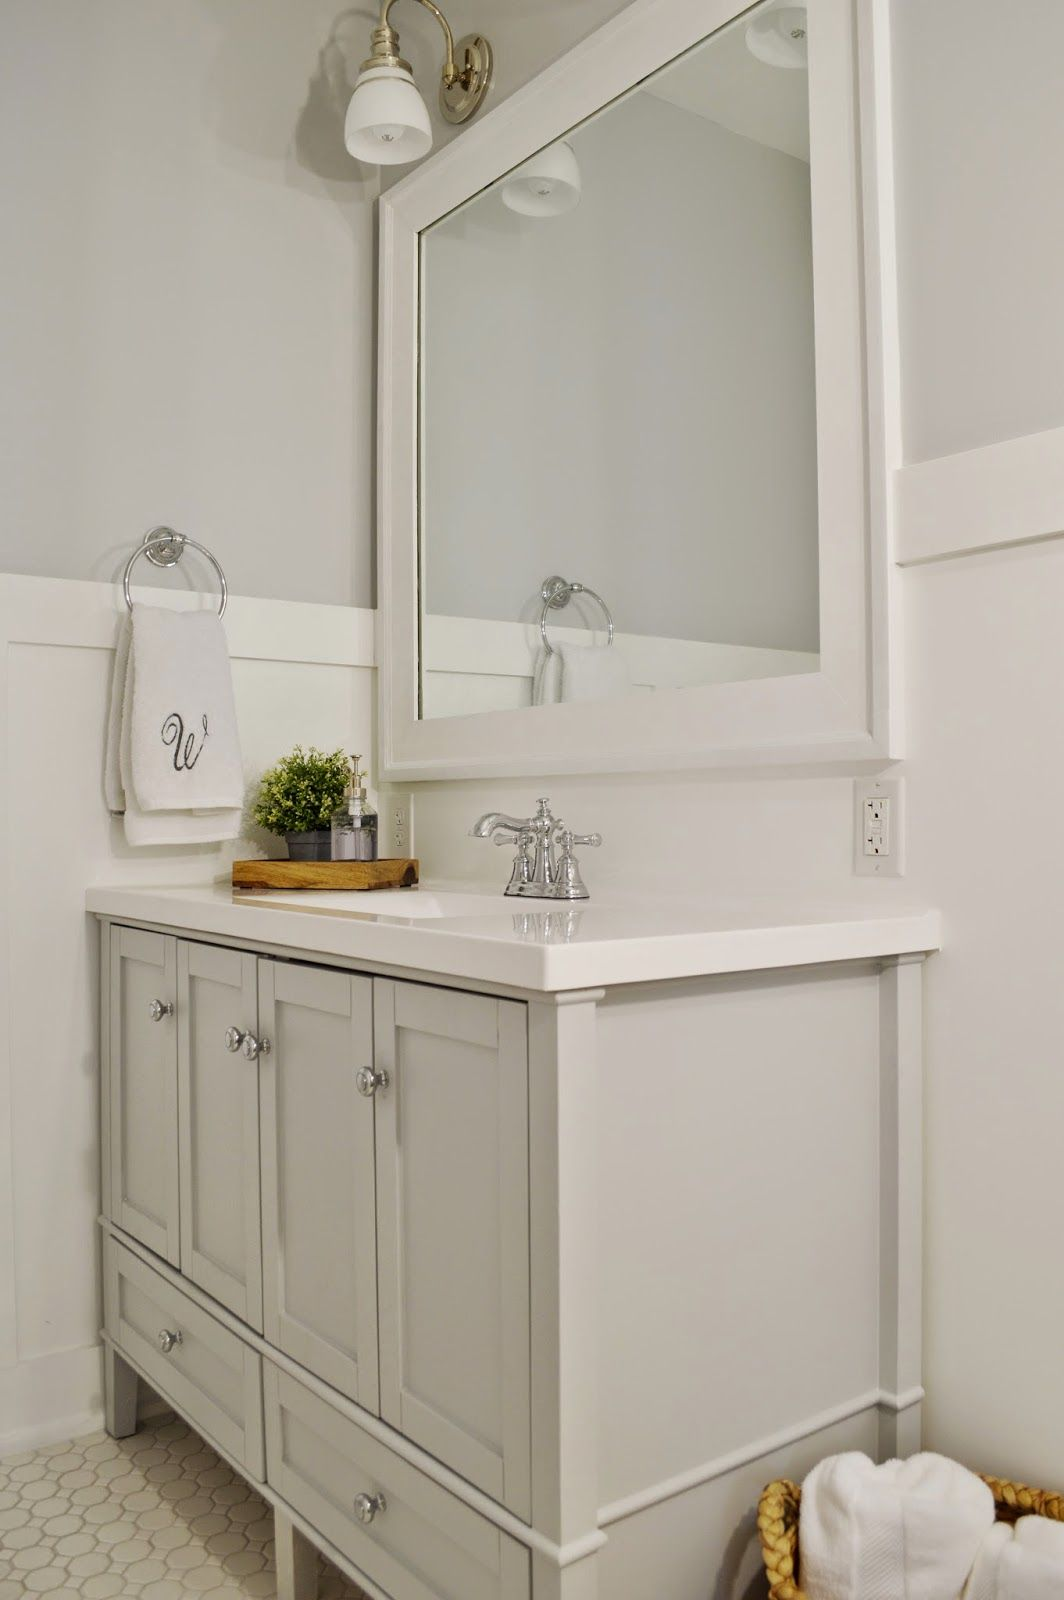 724 south house | classic bathroom | grey vanity | board and